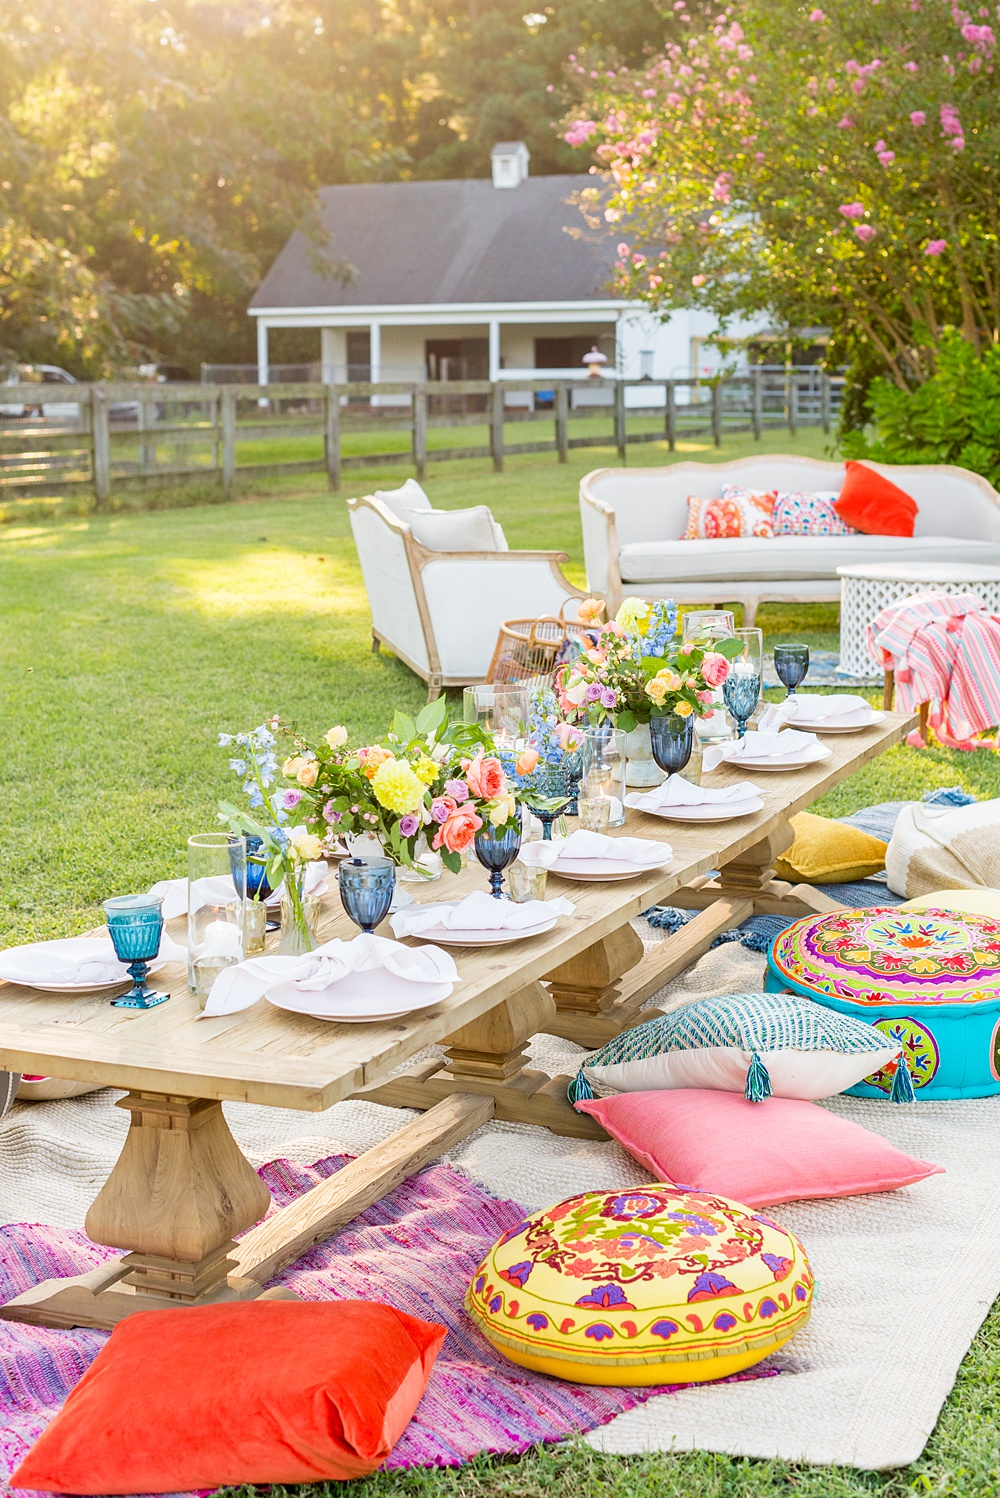 Thirtieth birthday party. Full of color, lush garden flowers, and the yummiest vegan unicorn confetti cakes you ever did find! Click through for the details. Mikkel Paige Photography #gardenparty #birthdayparty #bohemianparty #unicornparty #styledshoot #backyardparty #flowers | glitterinc.com | @glitterinc